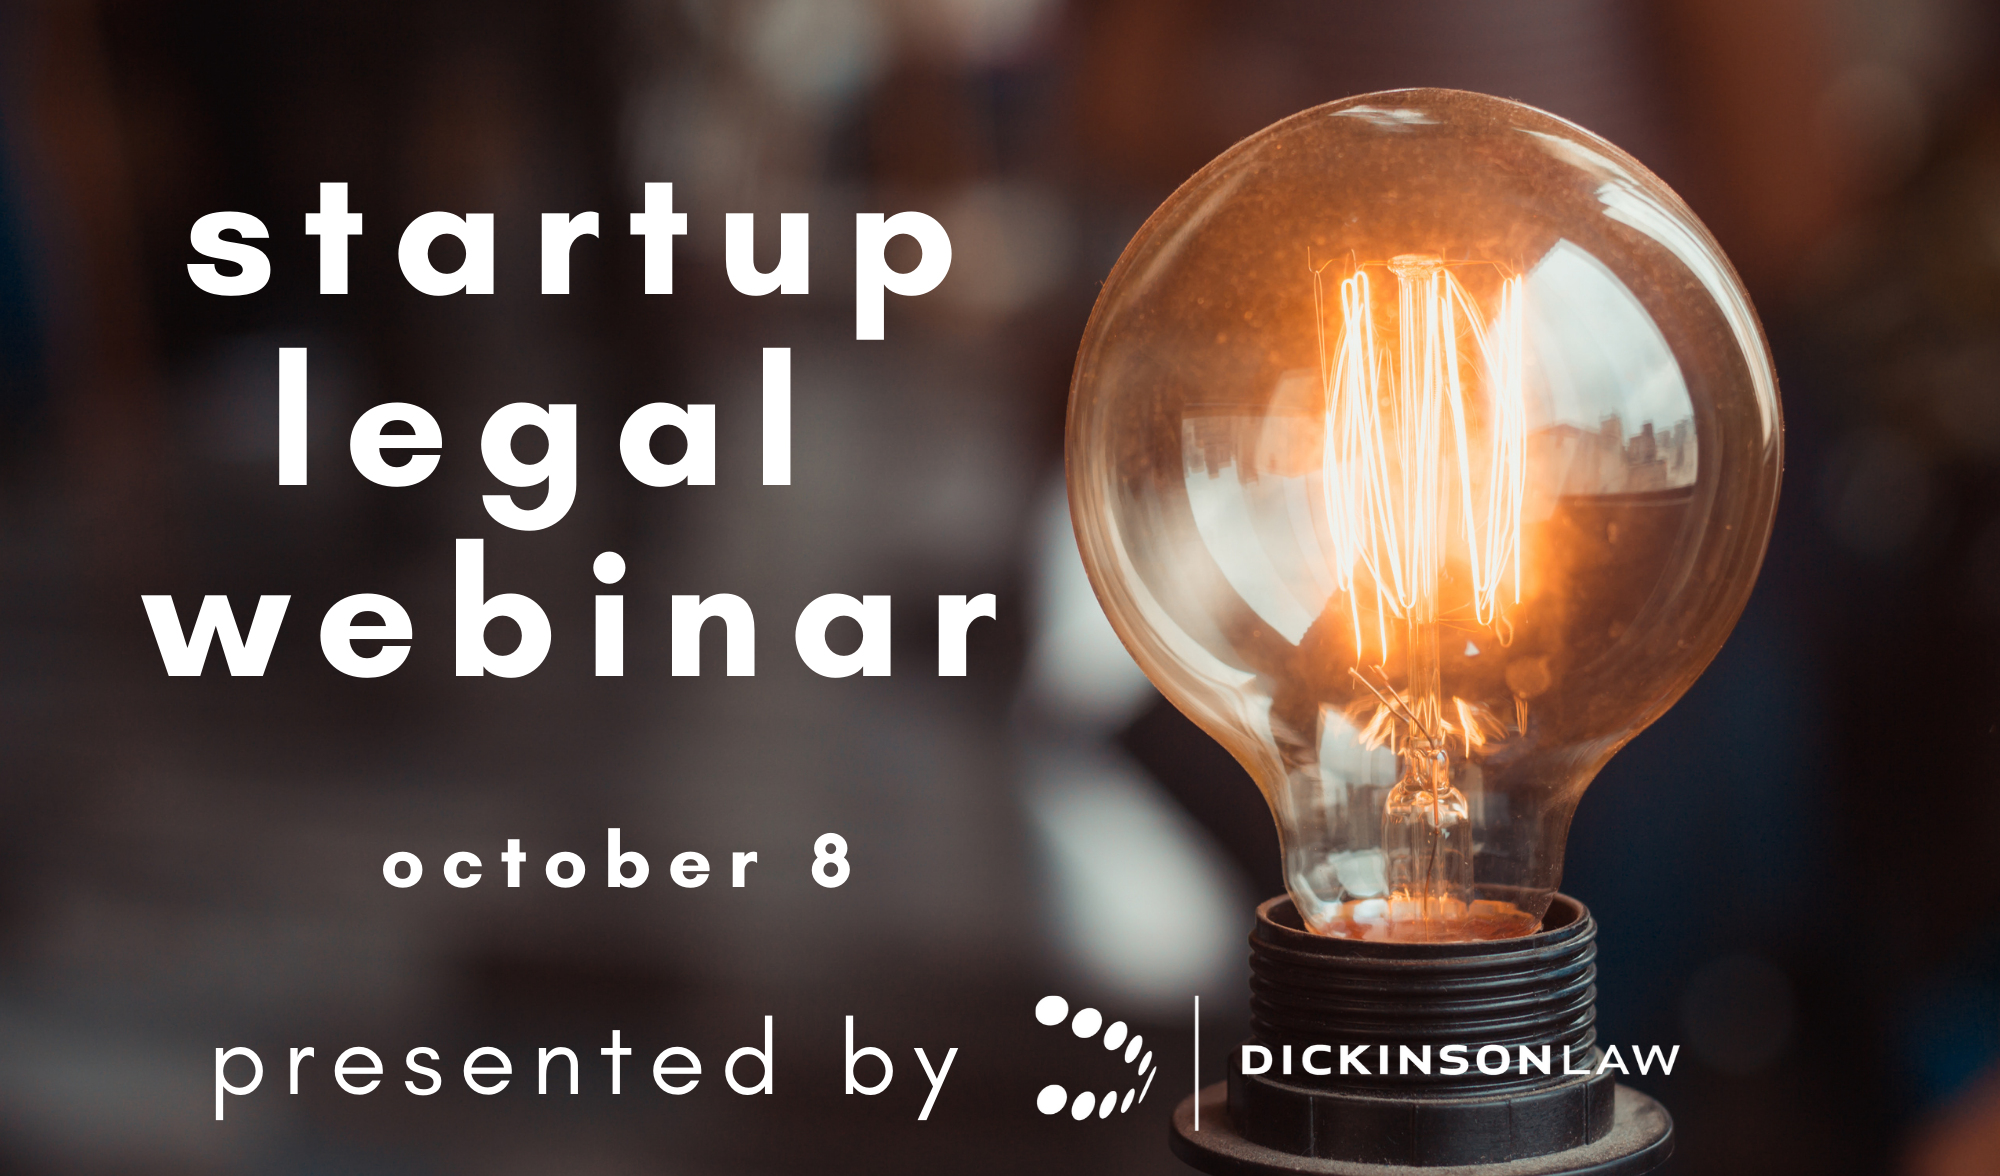 Startup Legal Webinar to Be Held October 8